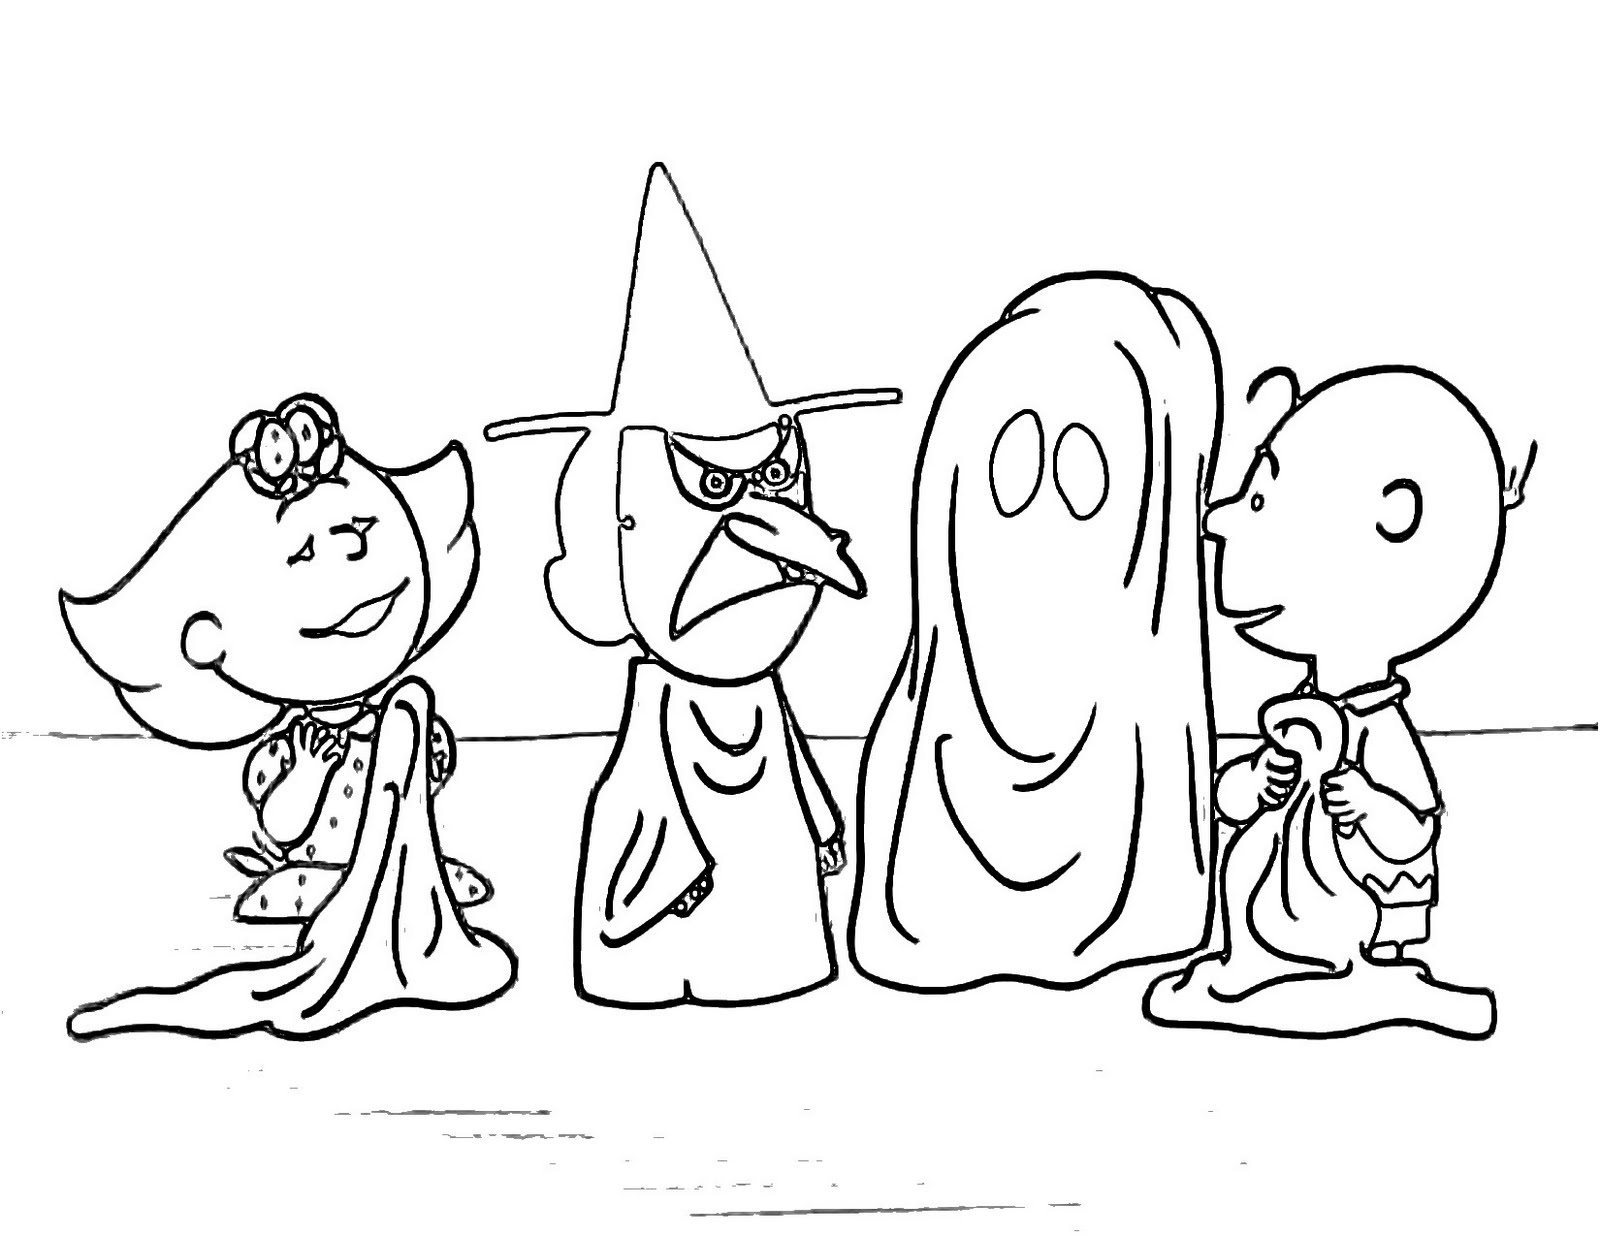 fans of peanuts charlie brown will love these halloween coloring sheets of charlie browns halloween a classic click on the coloring page you like best